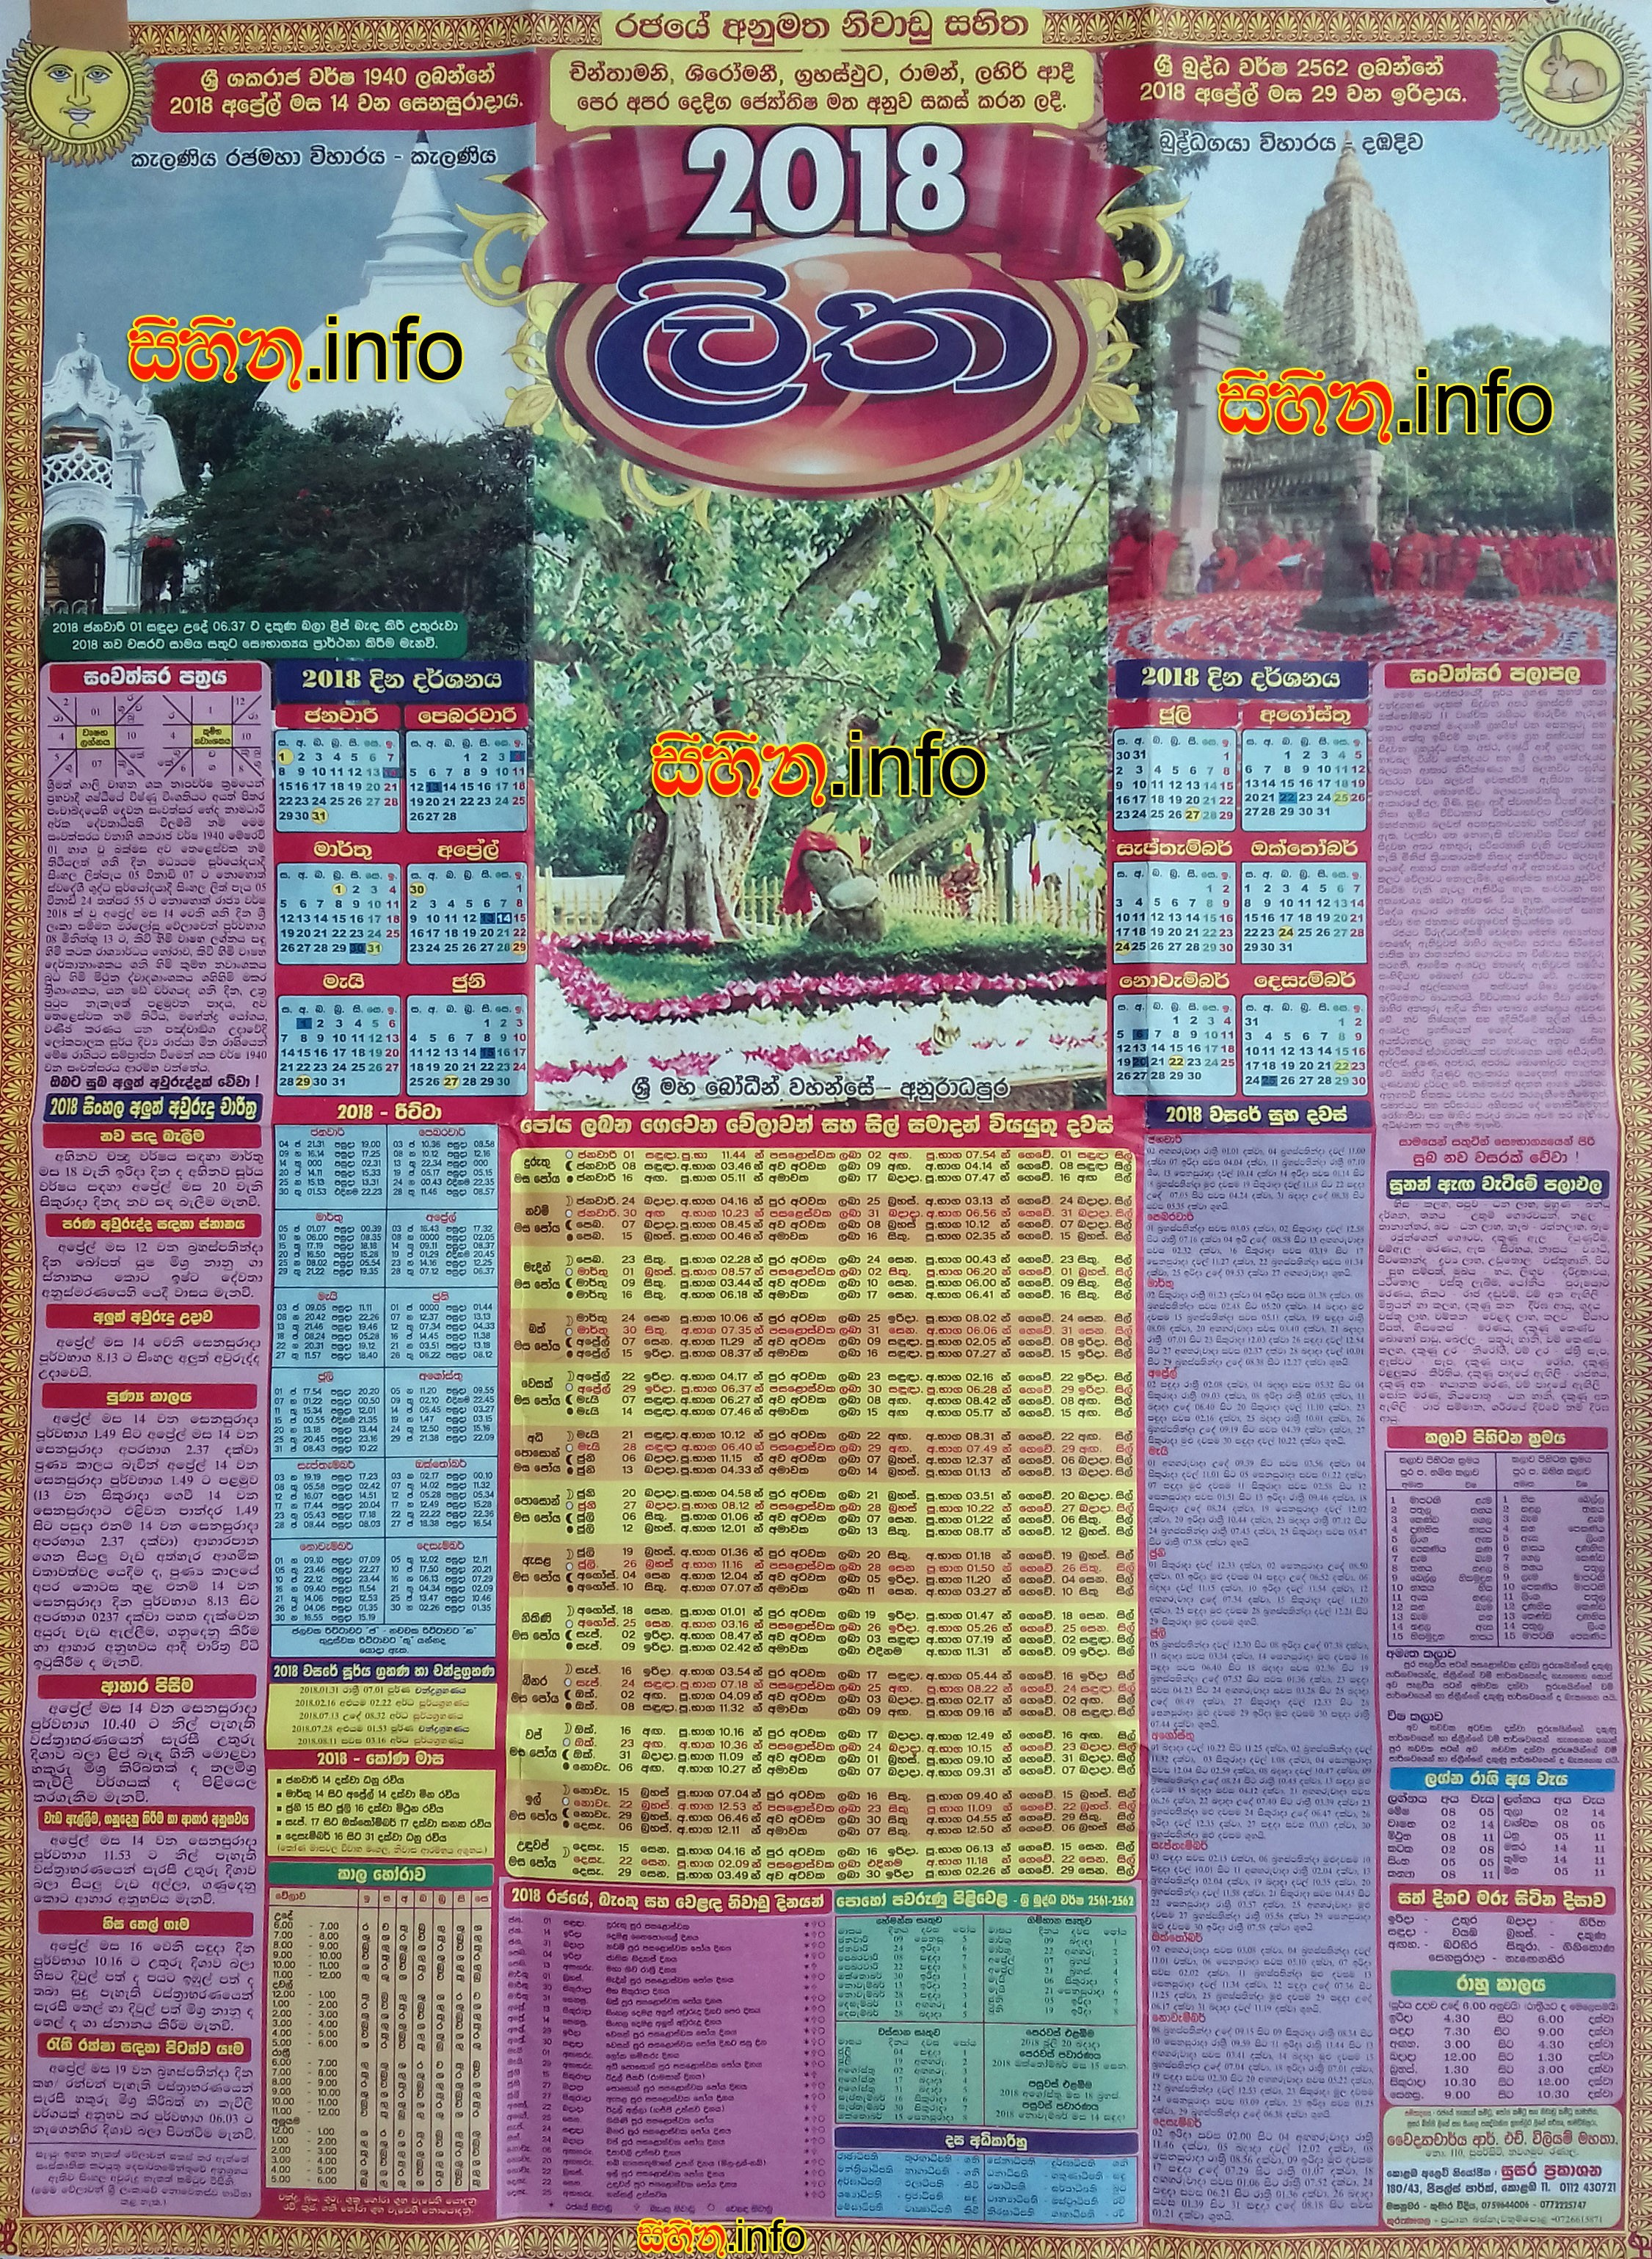 2019 March Calendar Sri Lanka Más Reciente Julian Calendar 2019 Quadax July 2018 Calendar Sri Lanka – Calendar Of 2019 March Calendar Sri Lanka Más Caliente Phd Chamber